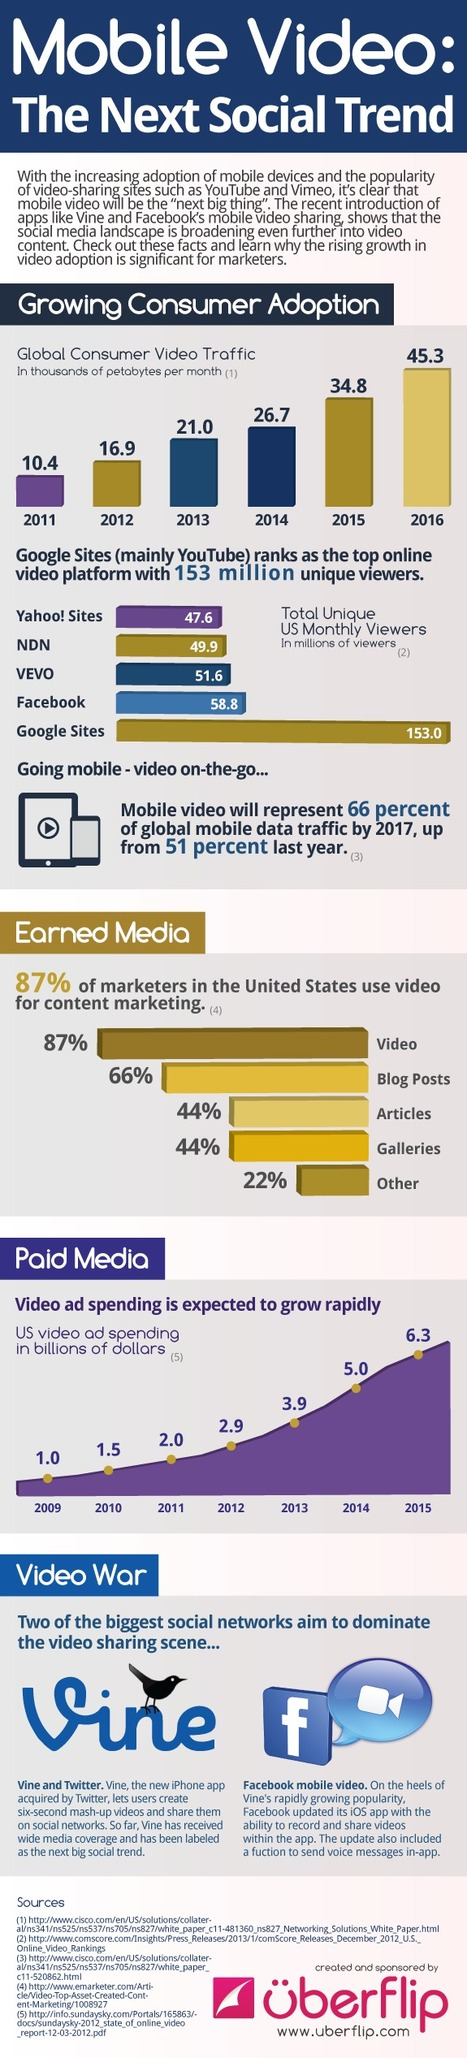 Is Mobile Video The Next Big Thing In Social Media? [INFOGRAPHIC] | Social media platforms | Scoop.it